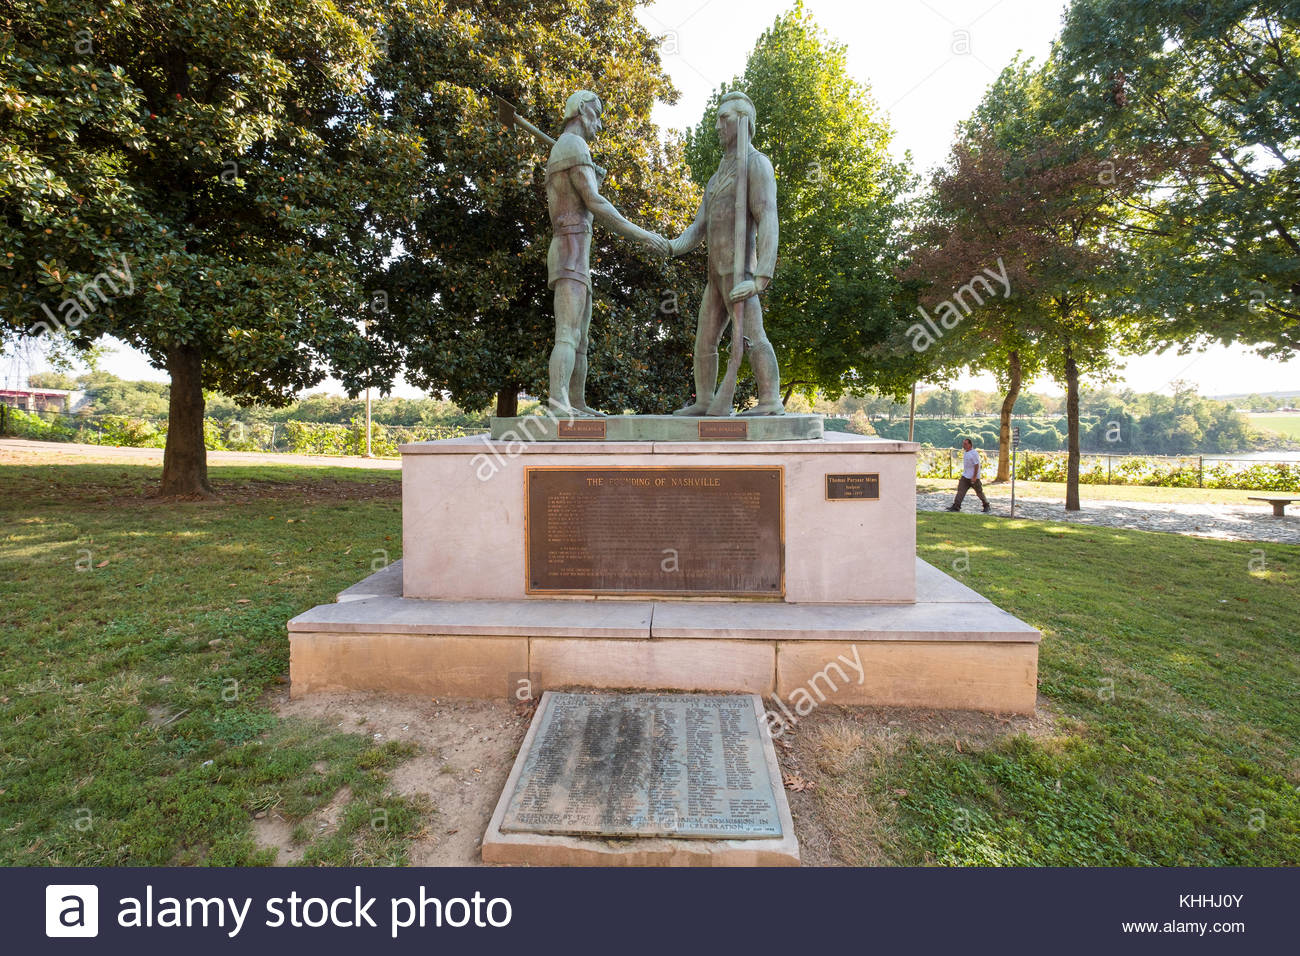 Copper statue The Founding of Nashville by Thomas Puryear Mims depicting James Robertson and John Donelson shaking - Stock Image